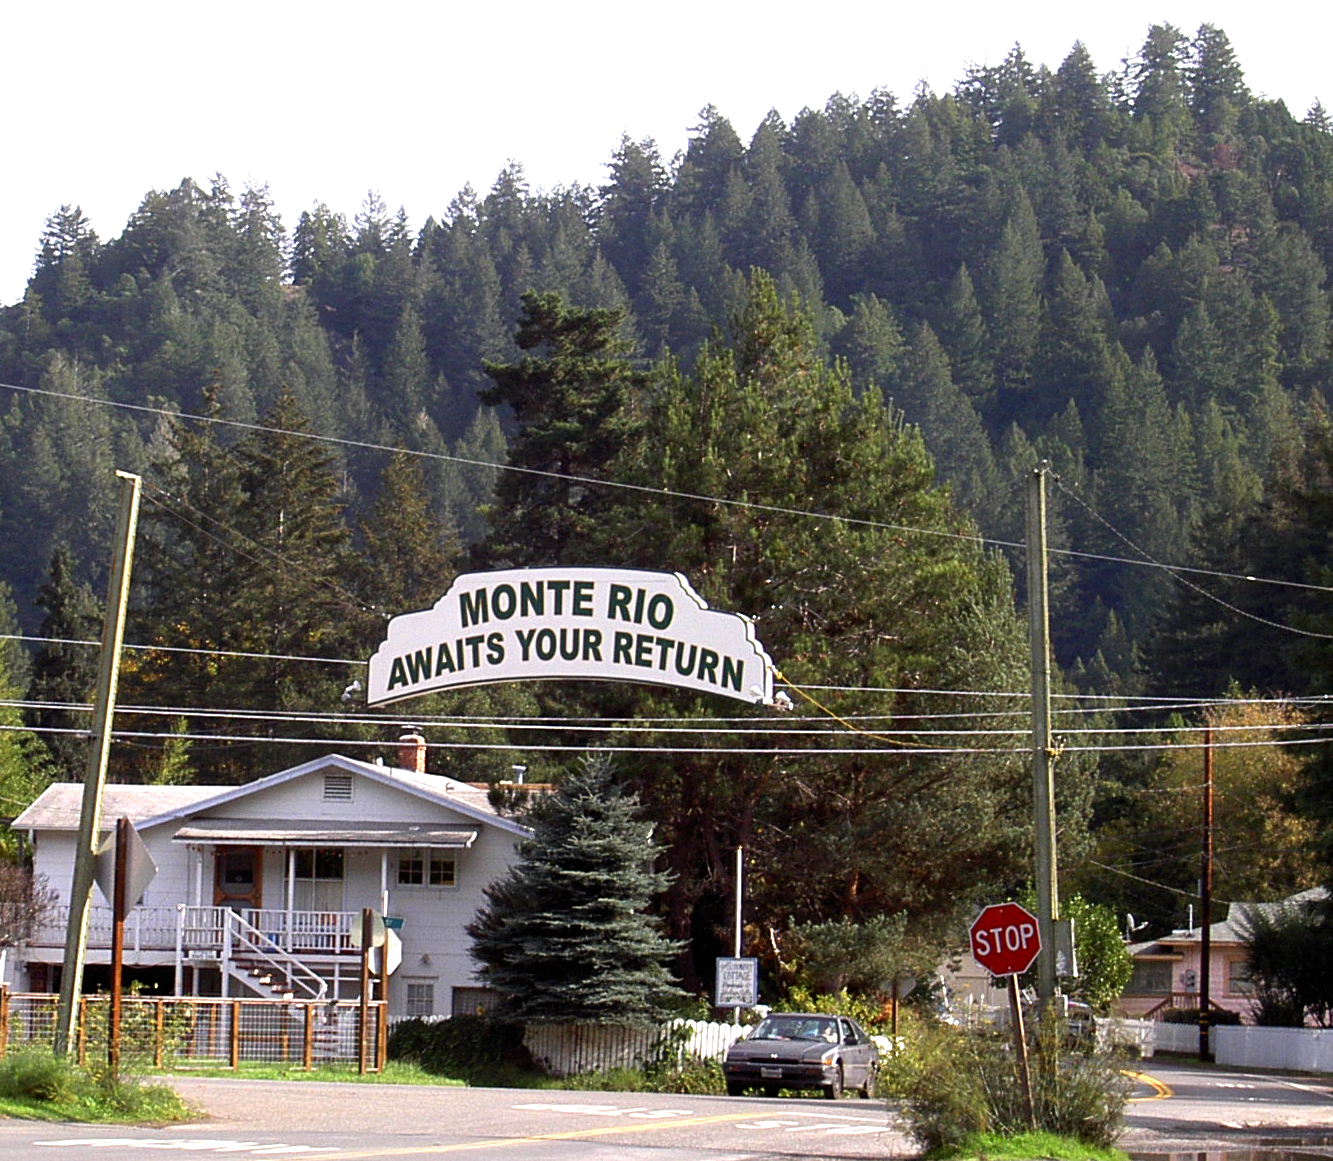 free online personals in monte rio 4 bohemian club reviews in monte rio, ca a free inside look at company reviews and salaries posted anonymously by employees.